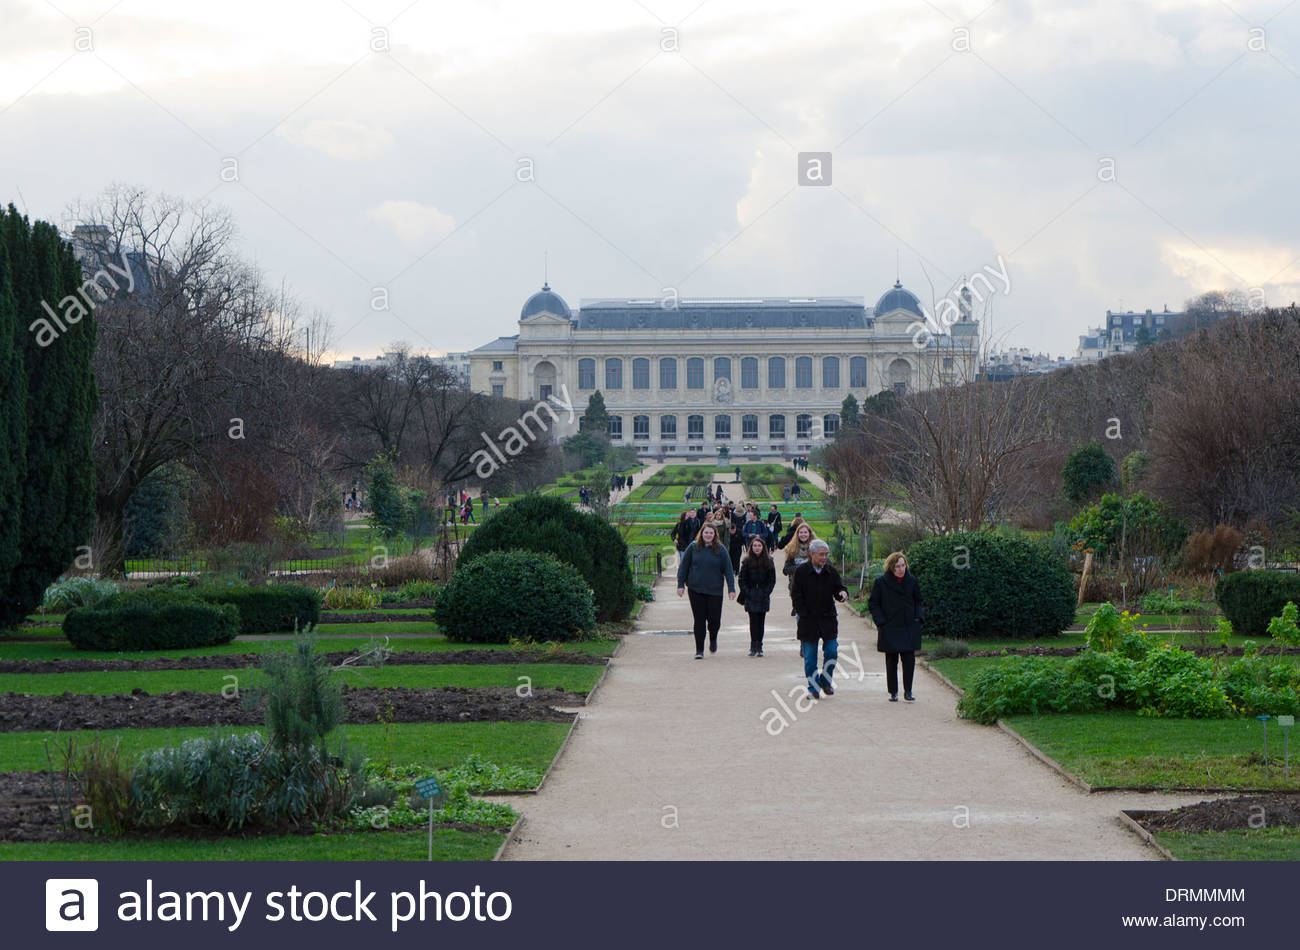 Jardin Des Plantes orleans Charmant Austerlitz In Paris Stock S & Austerlitz In Paris Stock Of 67 Best Of Jardin Des Plantes orleans